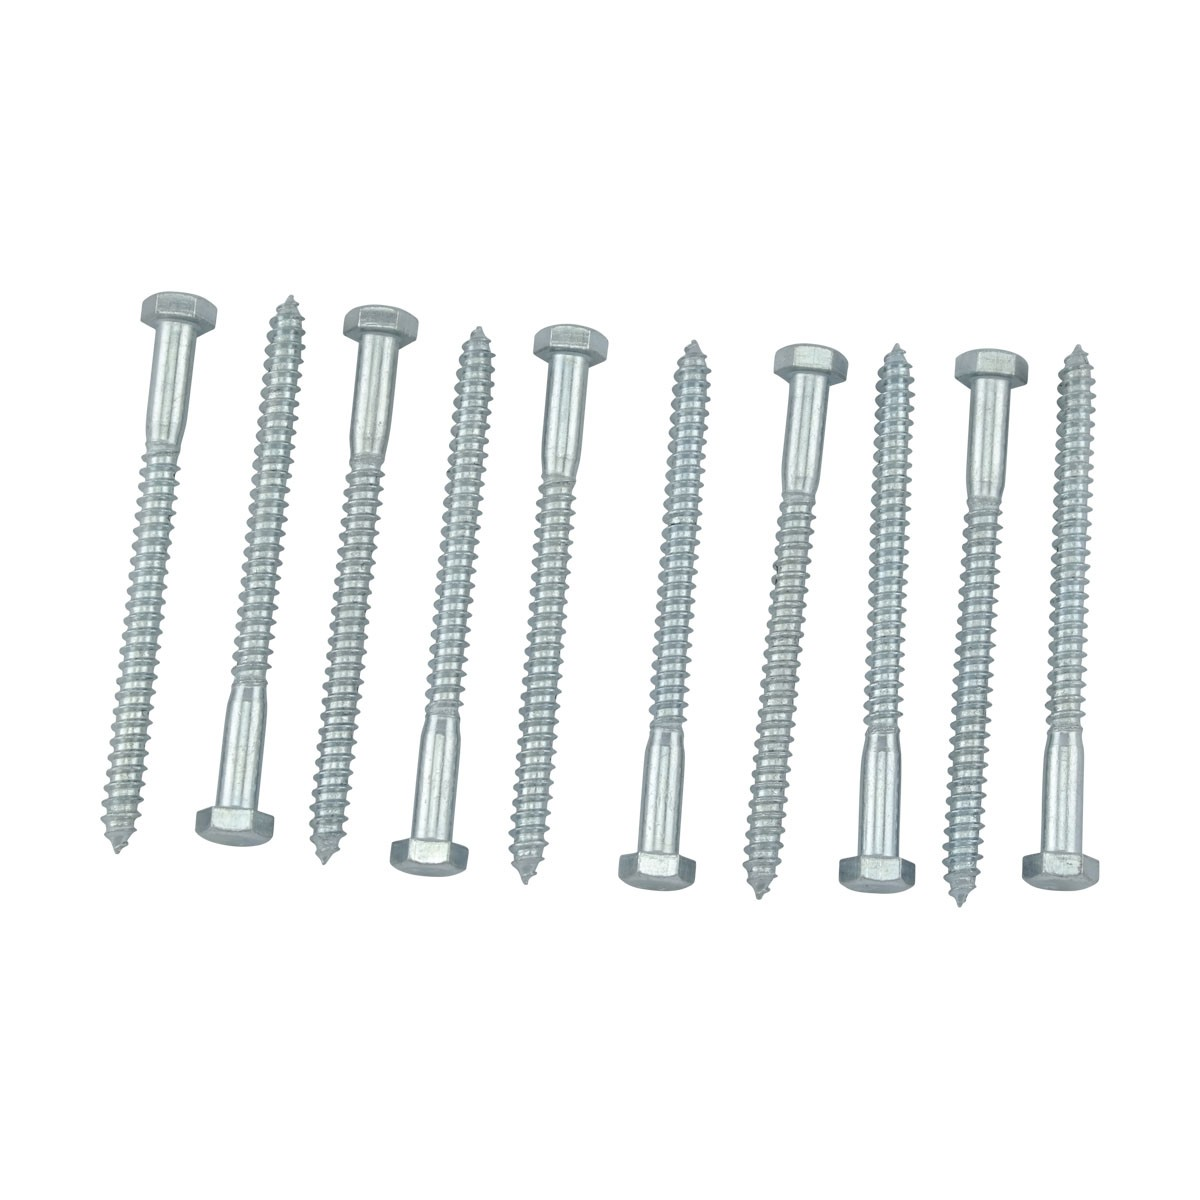 10 516 x 4 Hex Lag Bolt Steel  Zinc Plated 10 Pack Hex Lag Bolt Stainless Steel